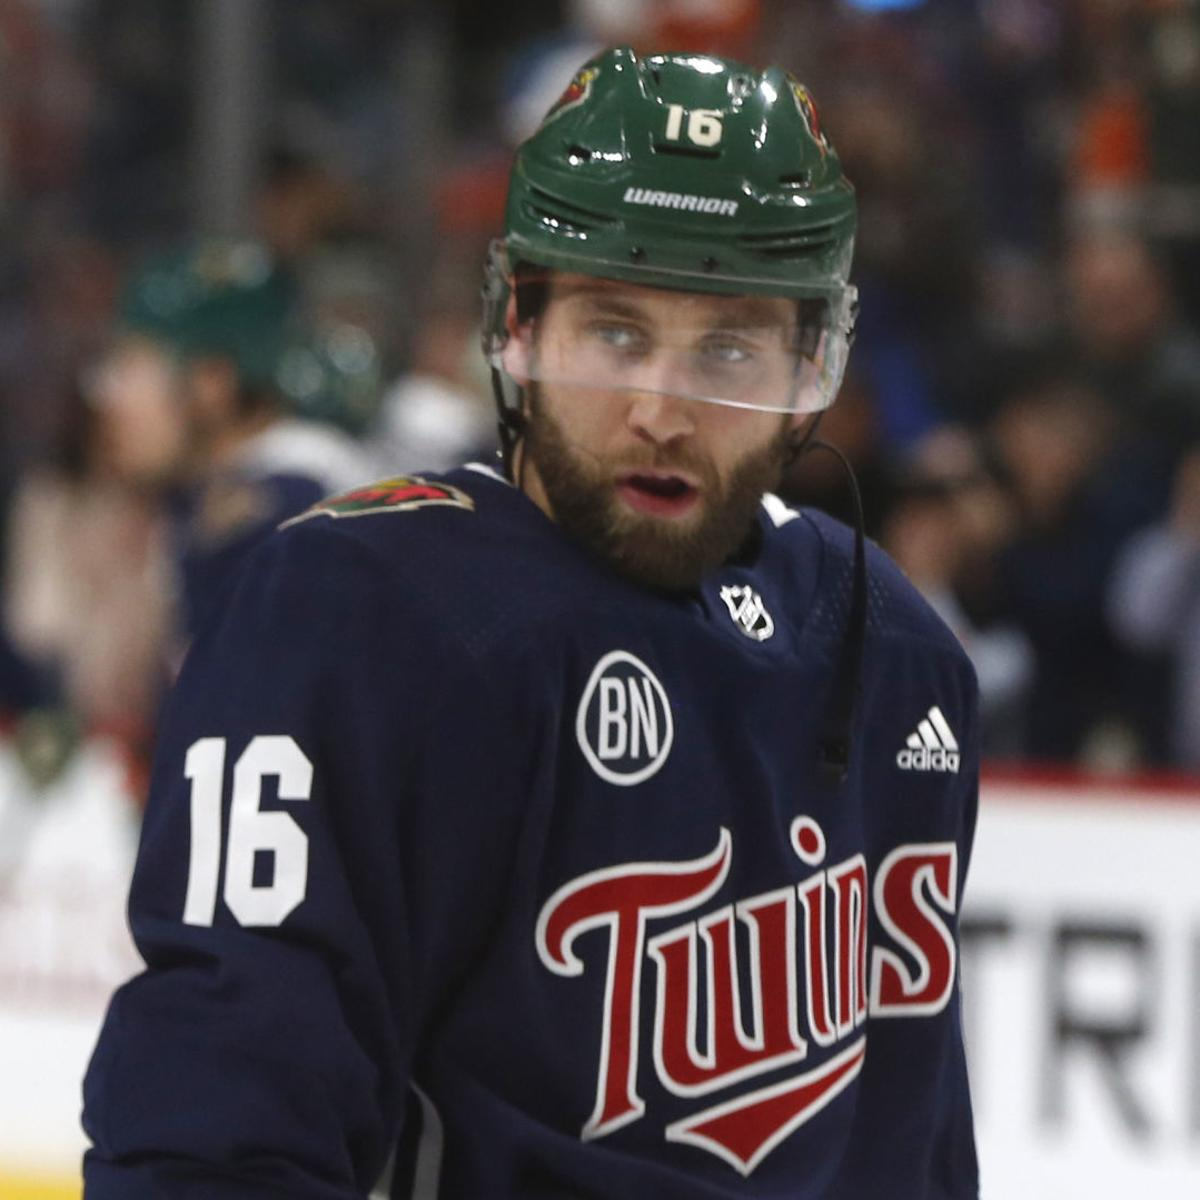 Family Man Mauer Gets Out Of The House To Drop Puck For Wild Game